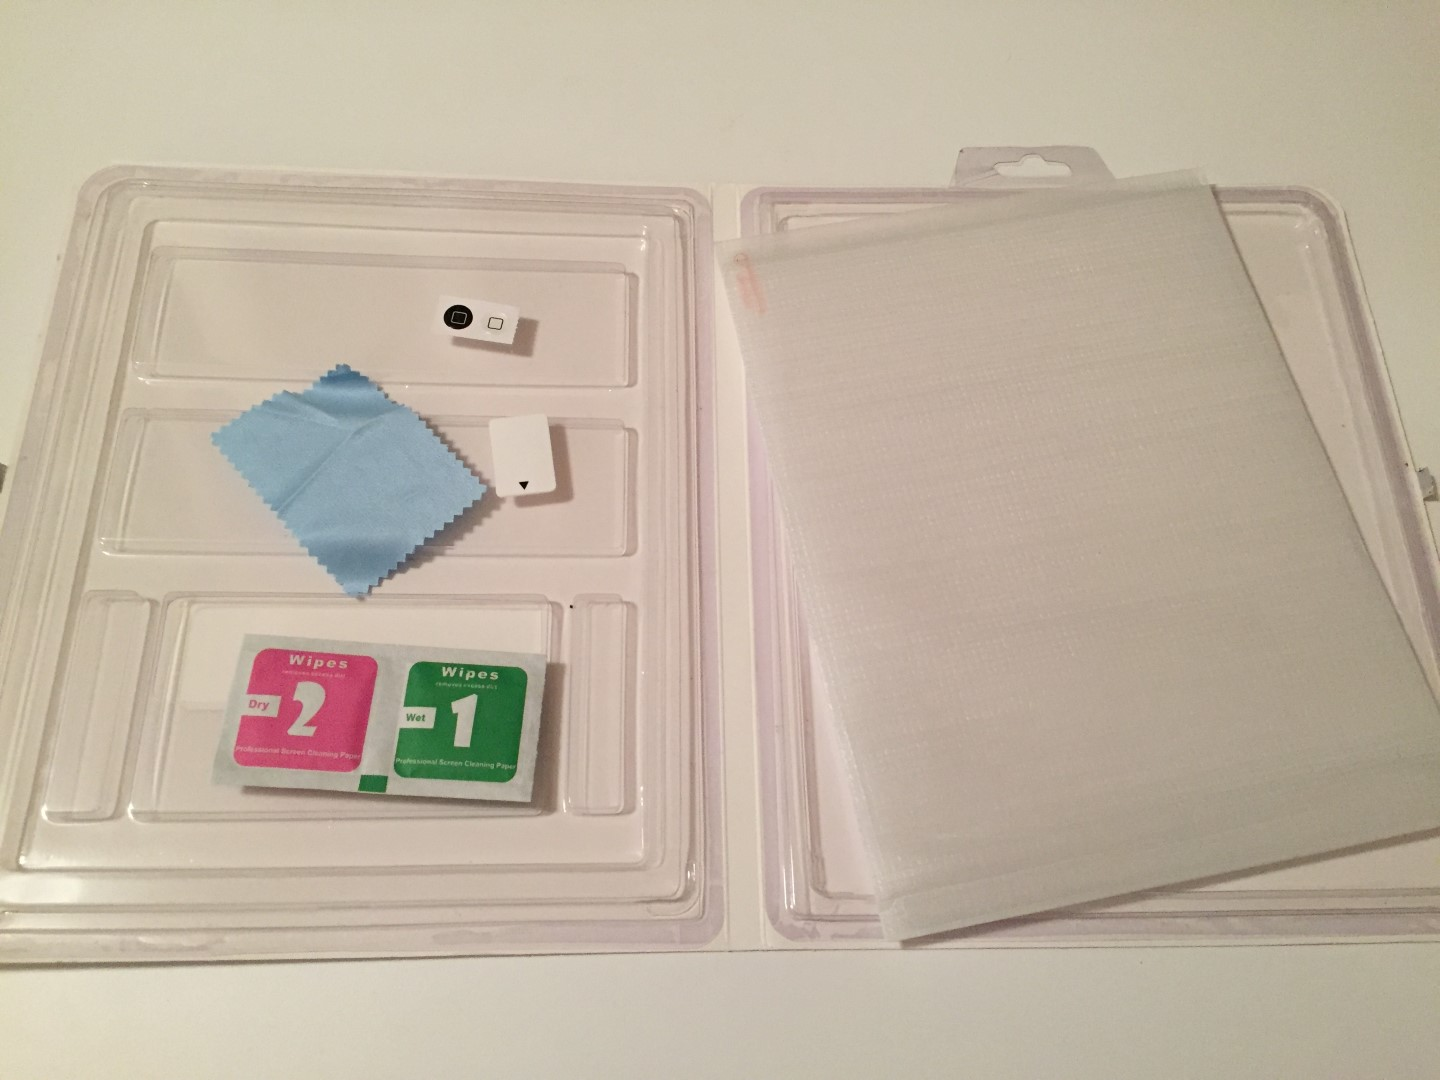 iPad Screen Protector package contents